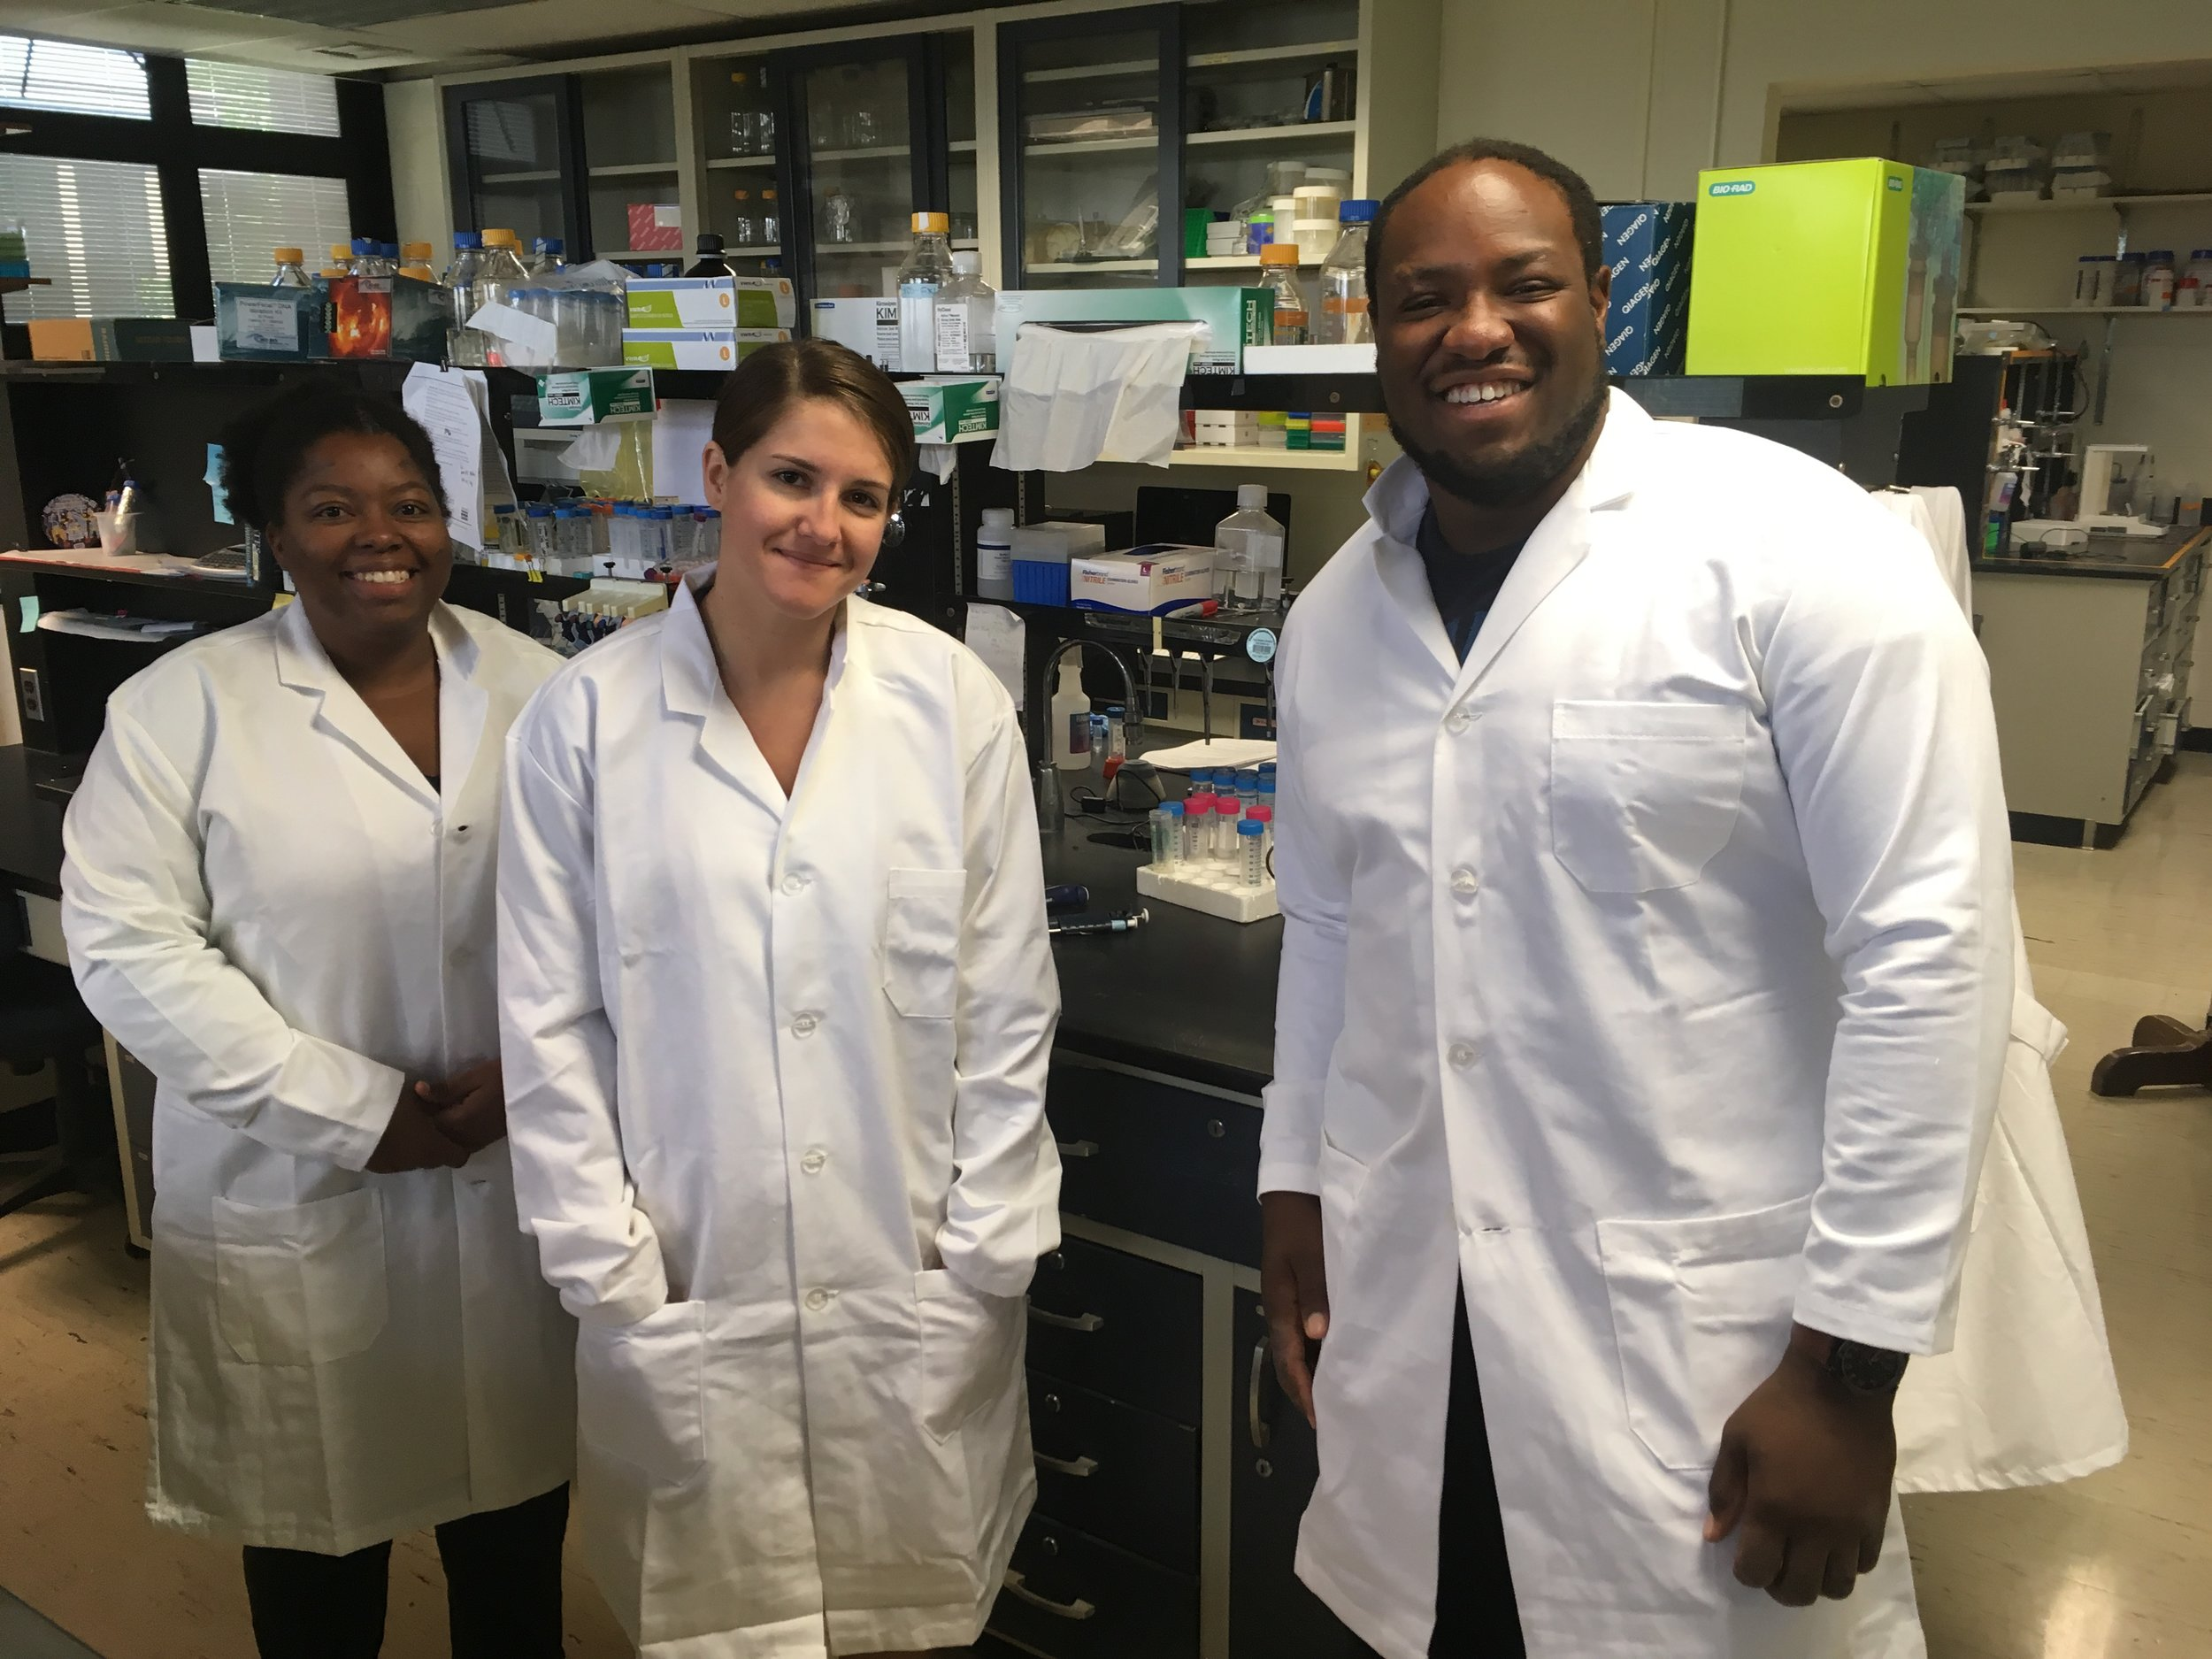 Akacia Halliday, Katharine Egan and Colin Howe in the Pennsylvania State University lab during their NSF funded Bridge to the PhD Program summer study.